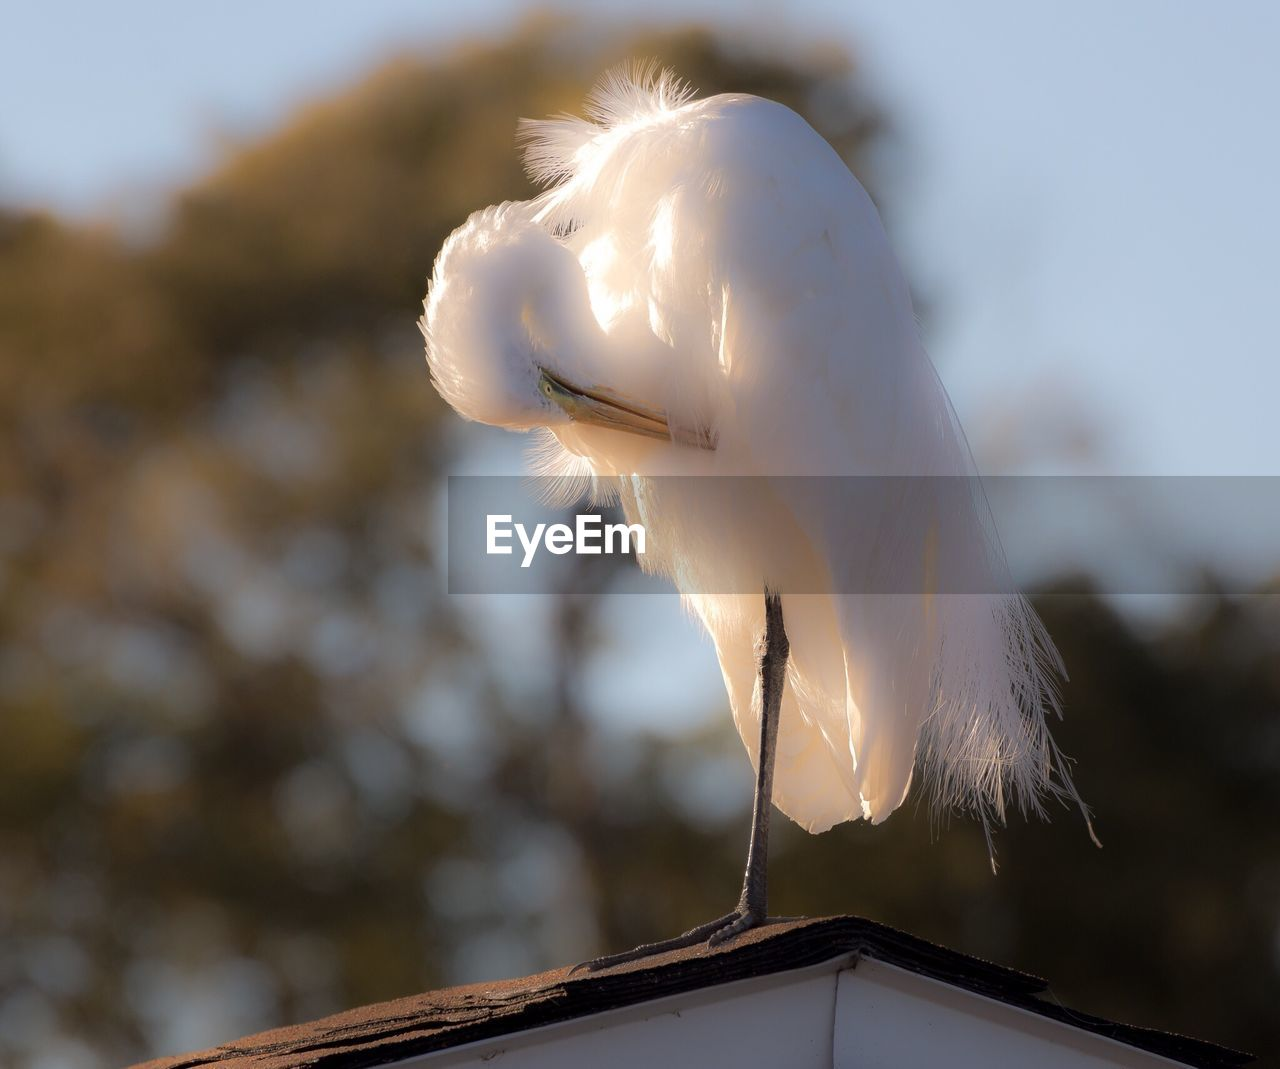 bird, no people, animals in the wild, focus on foreground, animal wildlife, animal themes, one animal, vertebrate, animal, day, white color, low angle view, nature, sky, egret, close-up, sunlight, roof, feather, outdoors